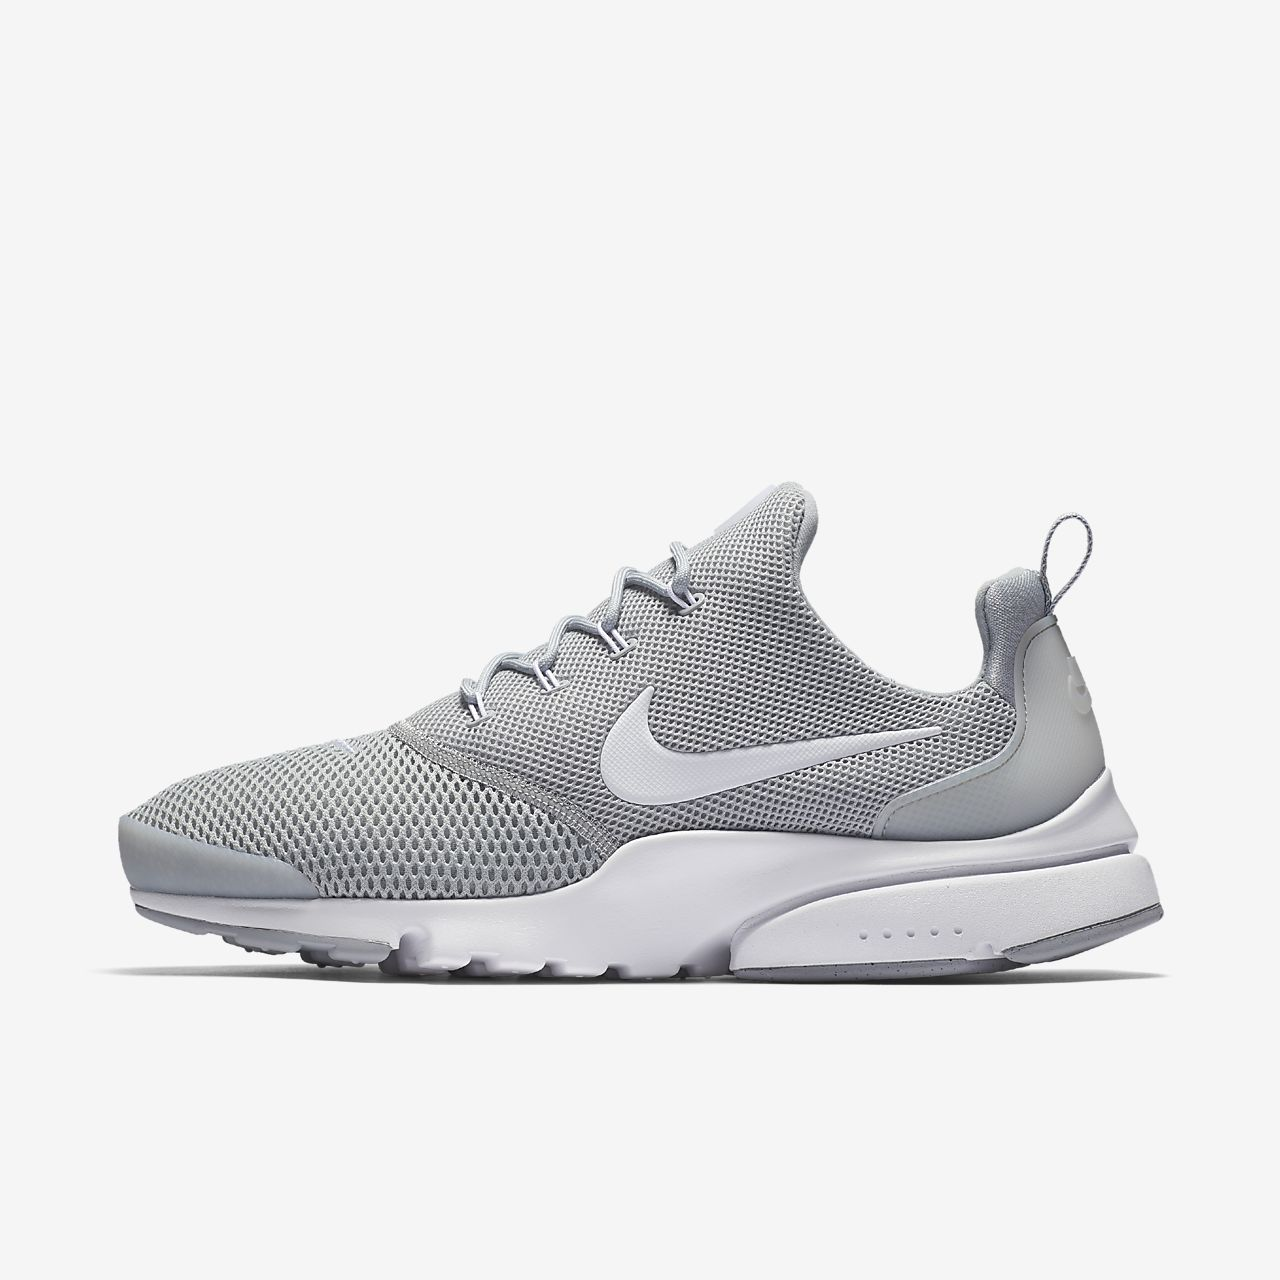 8f96b8e5f8d76 Nike Presto Fly Men s Shoe. Nike.com GB